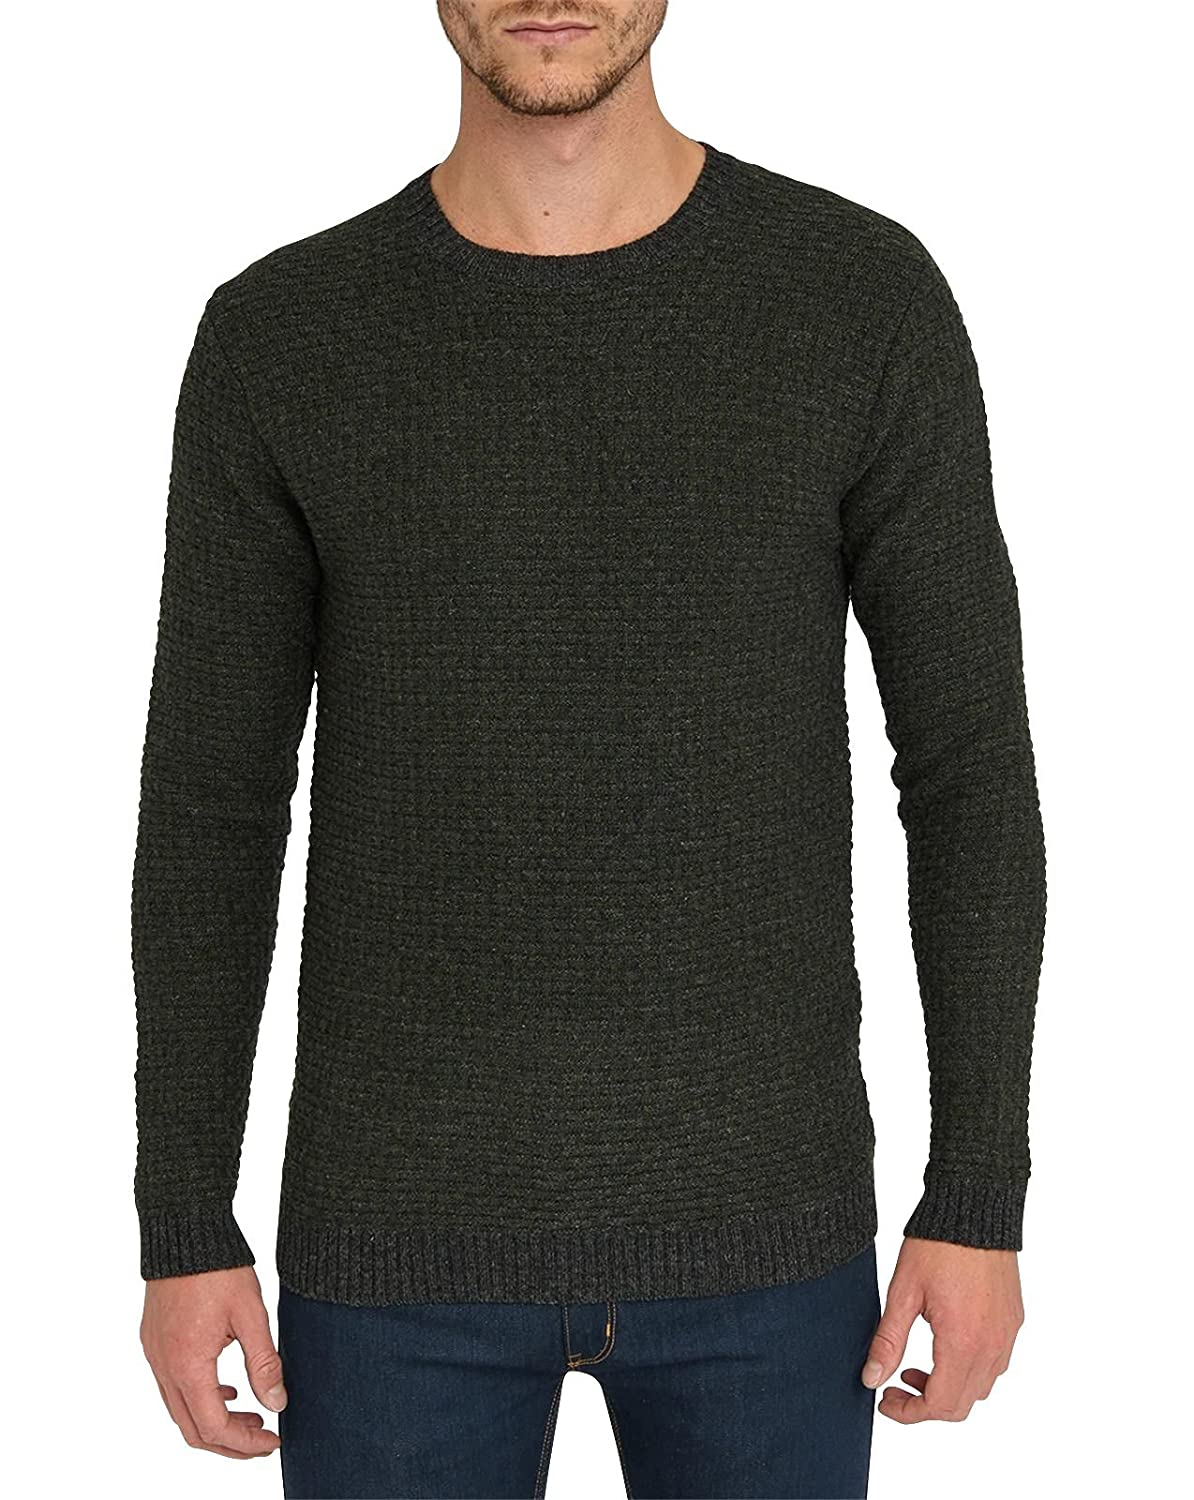 MINIMUM - Crew-neck Sweaters - Men - Khaki Meza Knit Sweater for men